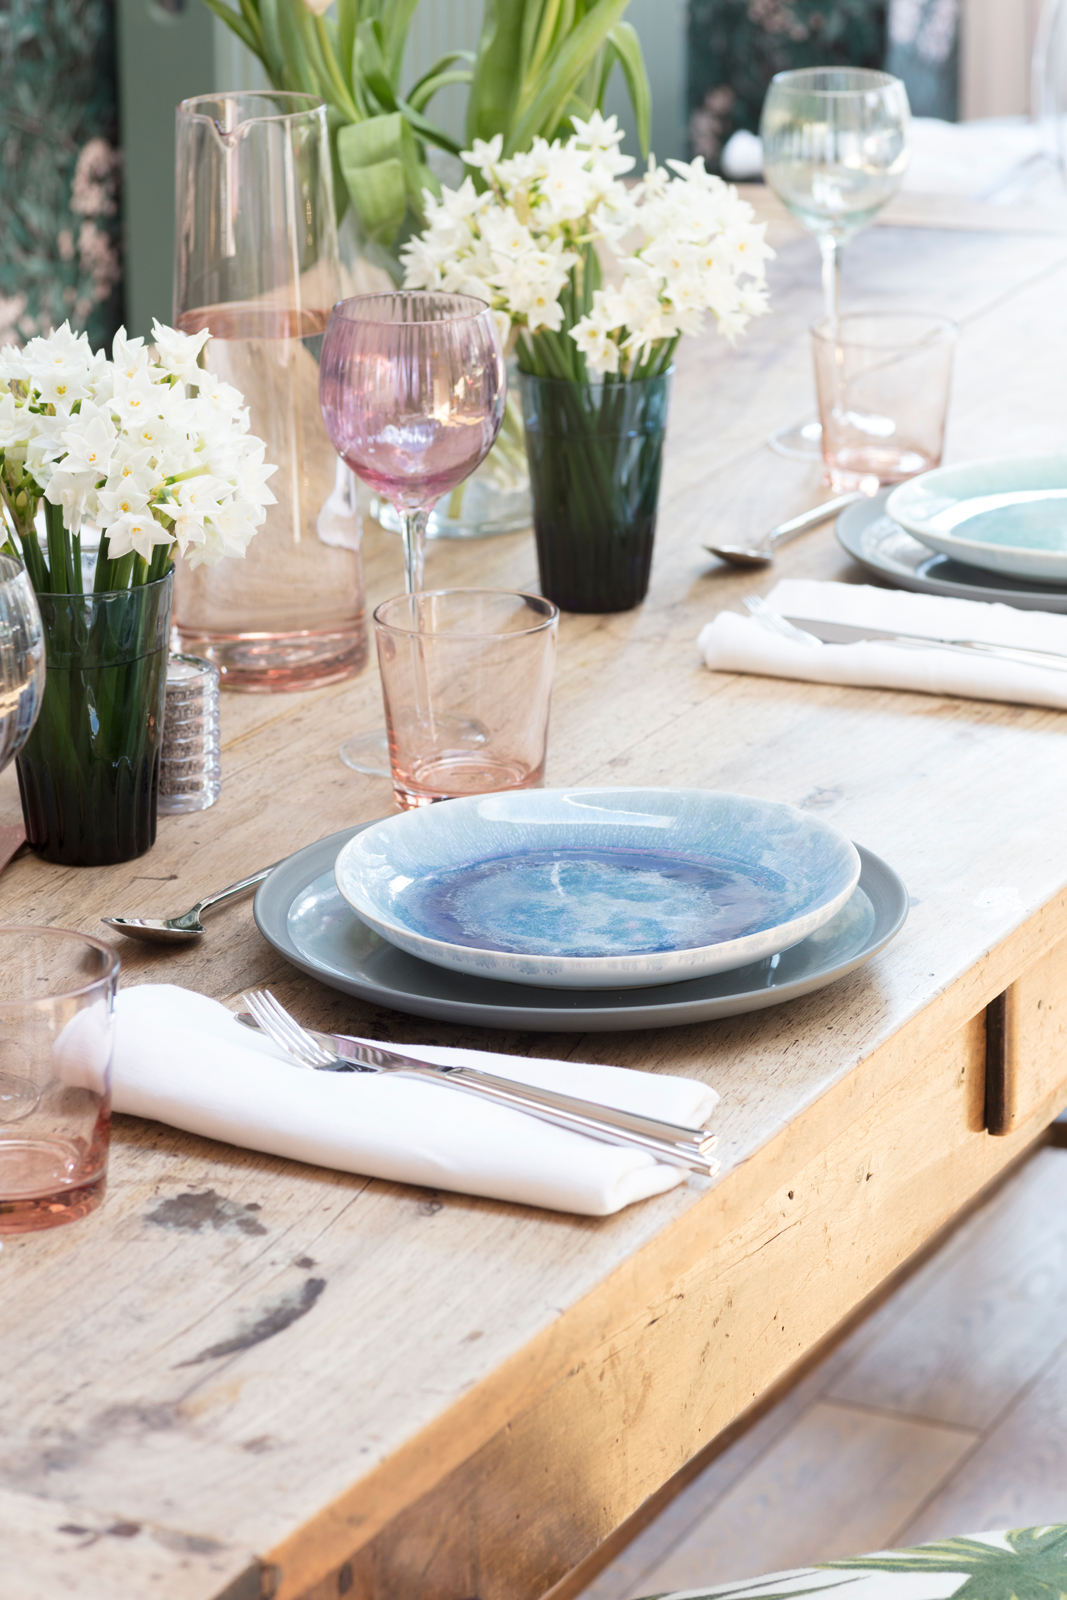 How to style a spring dining table